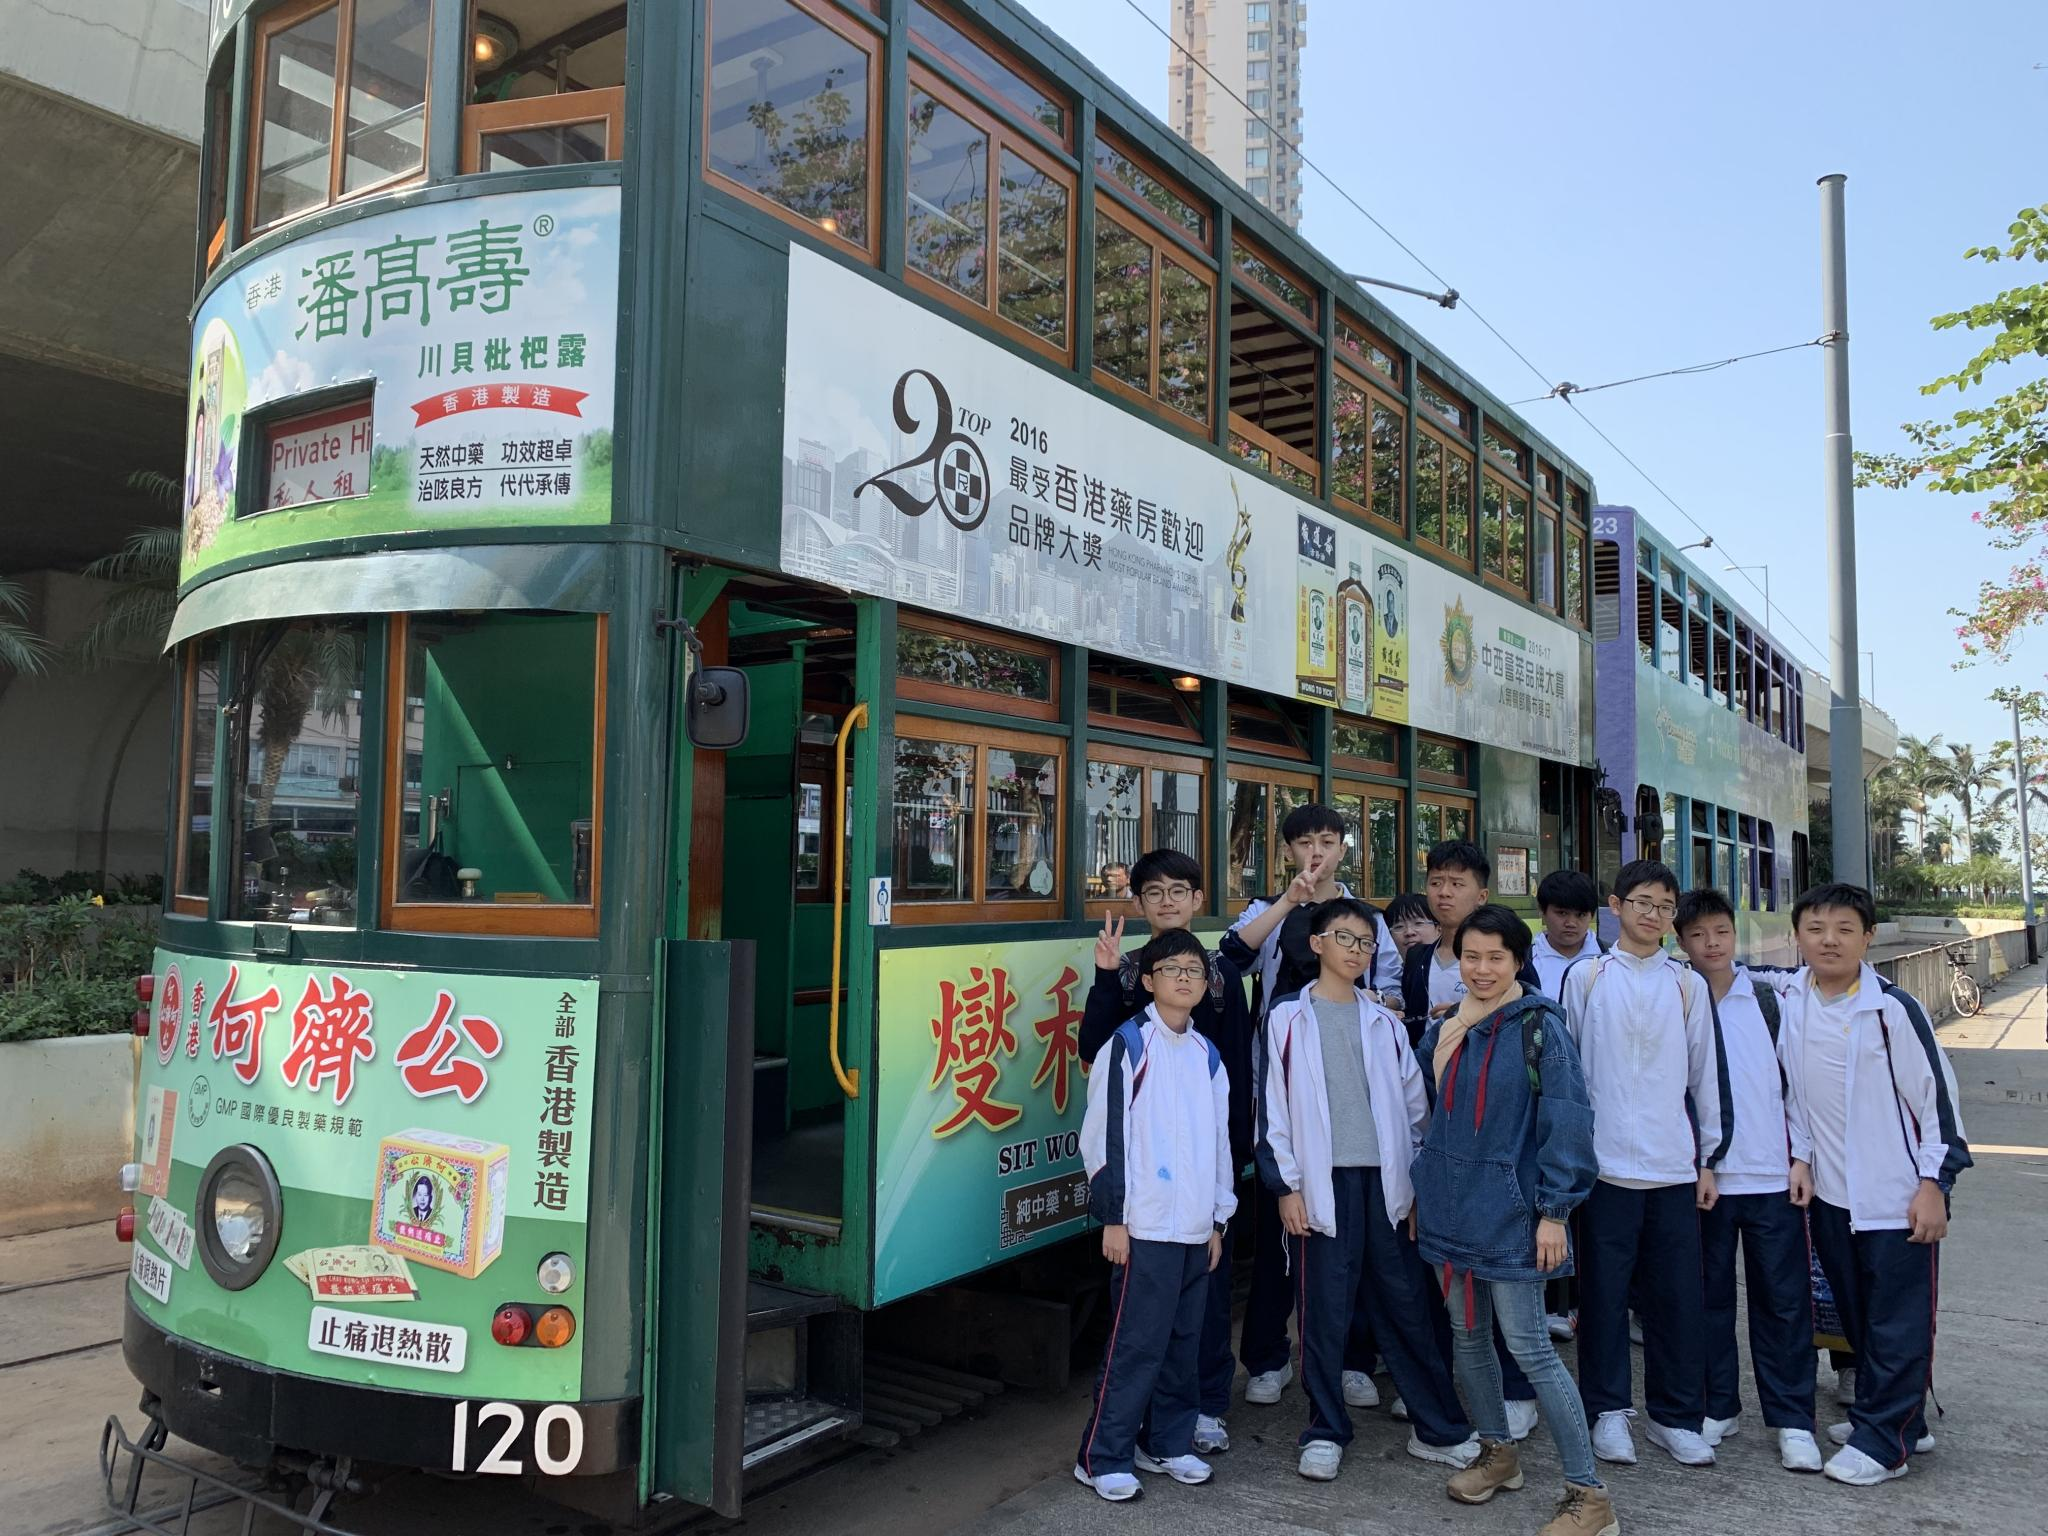 Students pose in front of a tram happily